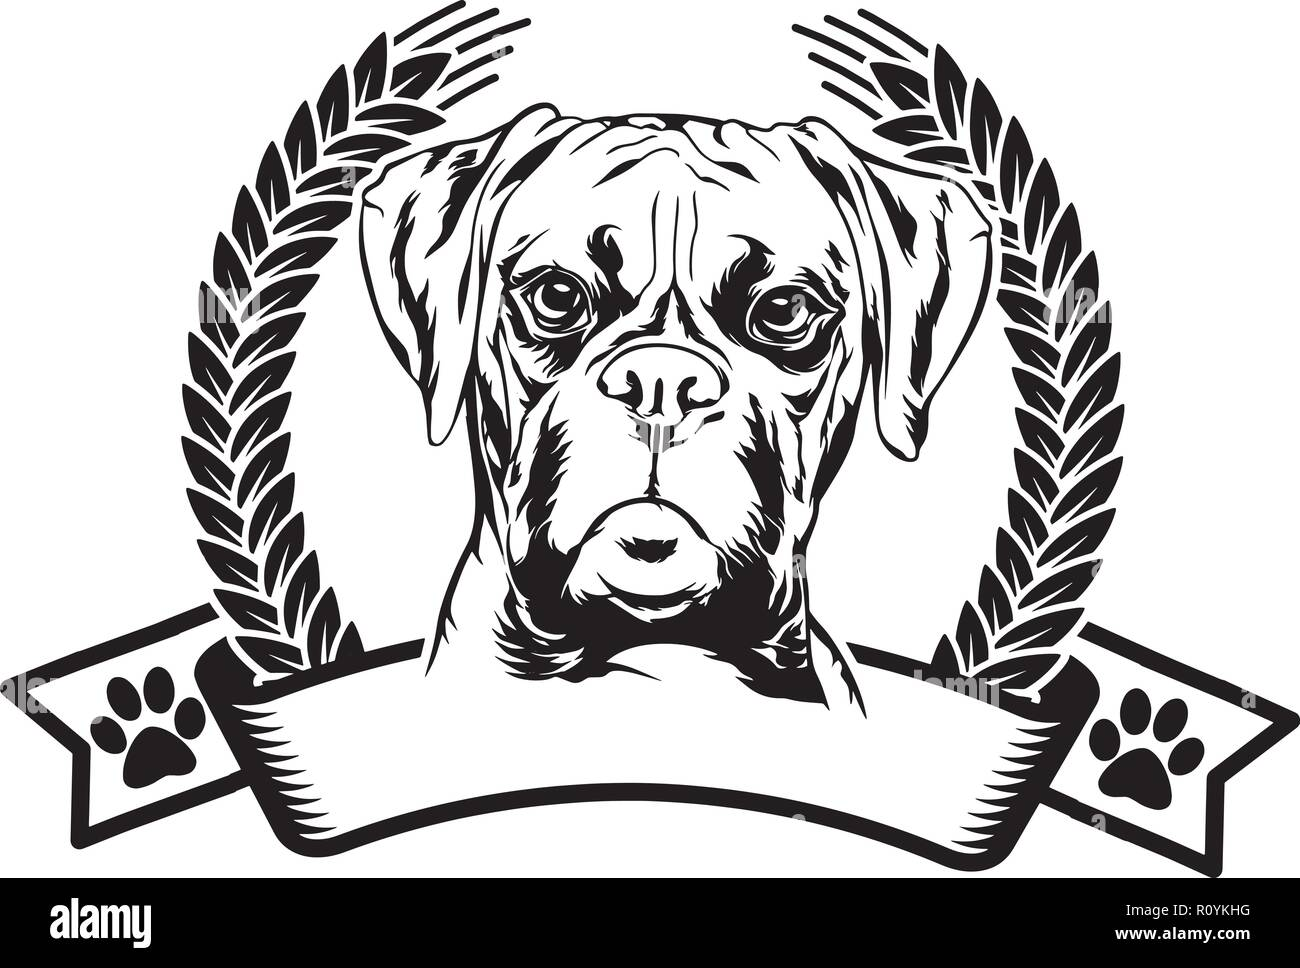 Boxer Dog Breed Head Isolated Pedigree Pet Portrait Smiling Happy Puppy Face Animal Cartoon Illustration Portrait Art Artwork Cute Design - Stock Image